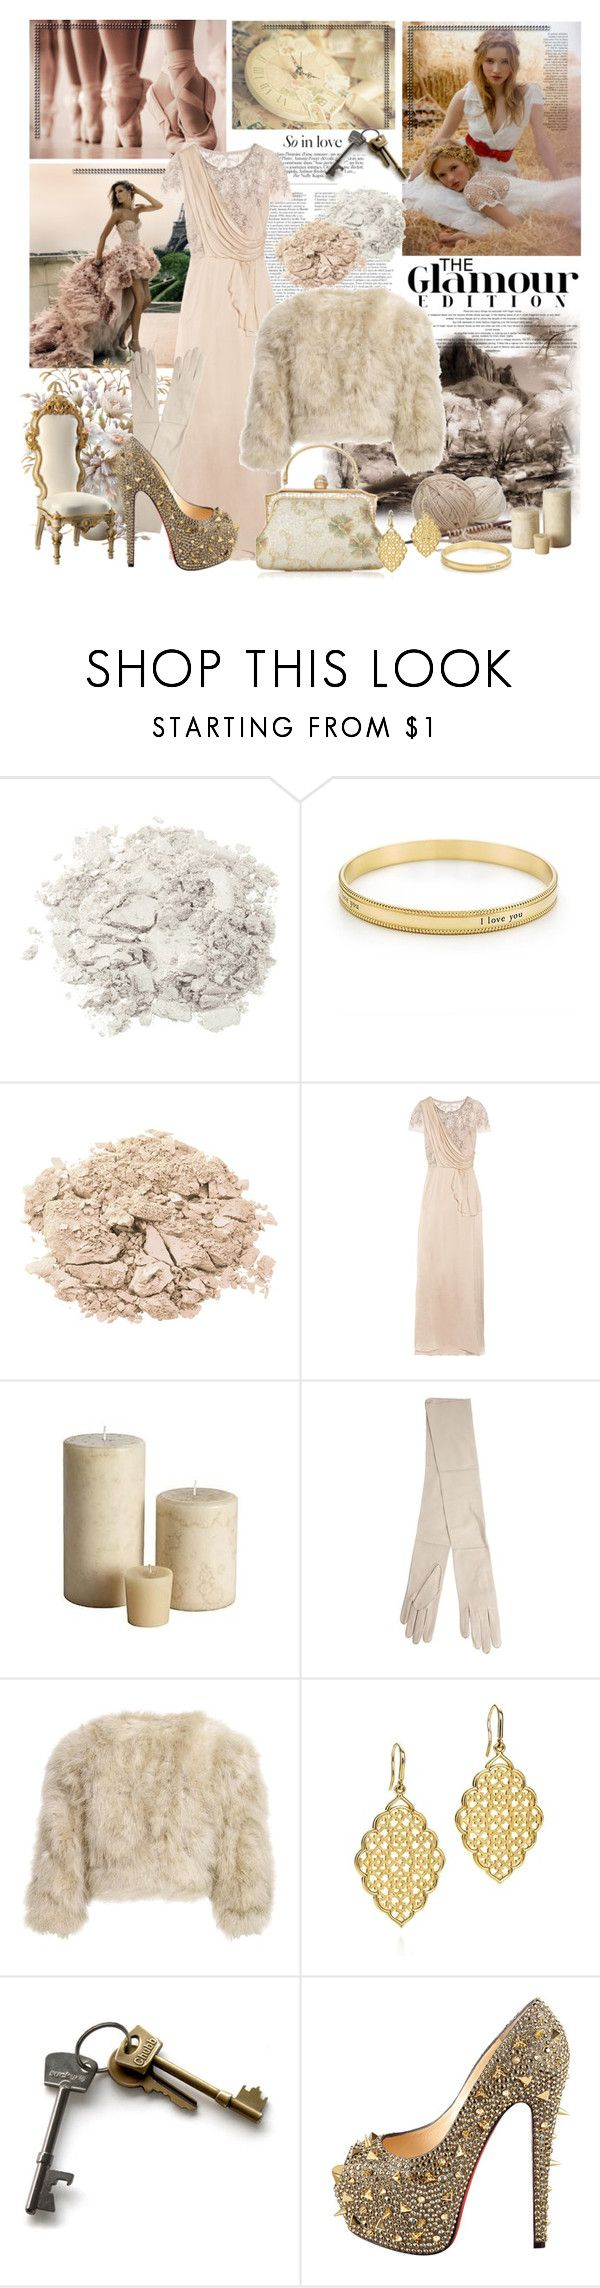 """The keys of the dream"" by pilar-elena ❤ liked on Polyvore featuring Zuhair Murad, Guide London, Stila, Tiffany & Co., Temperley London, Co